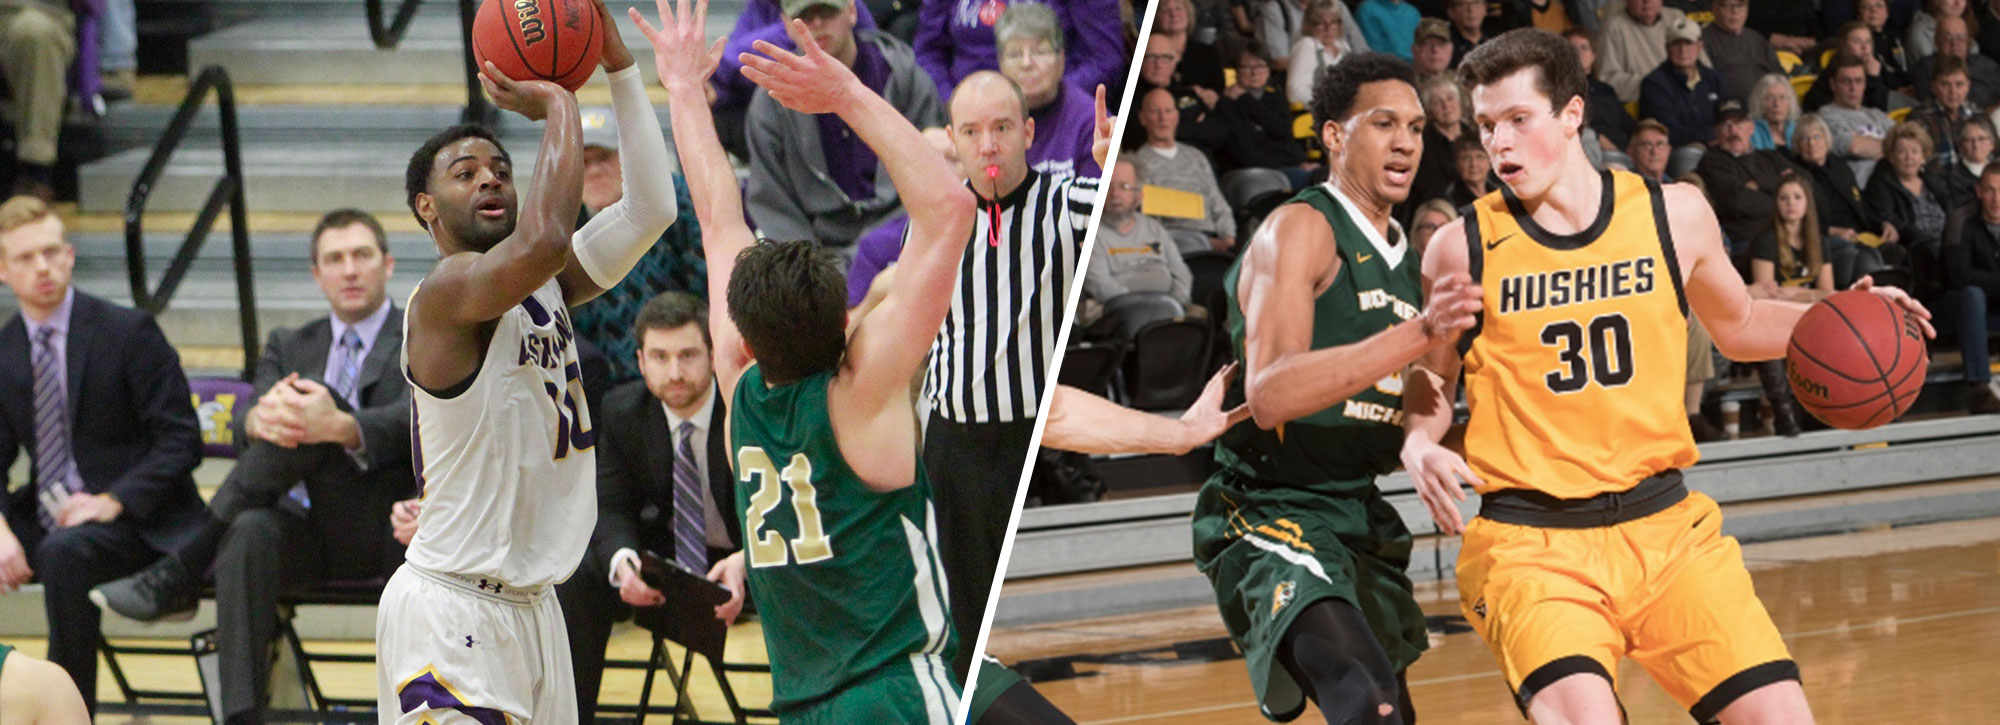 Michigan Tech's Monroe, Ashland's Davis Claim GLIAC Player of the Week Accolades Once Again